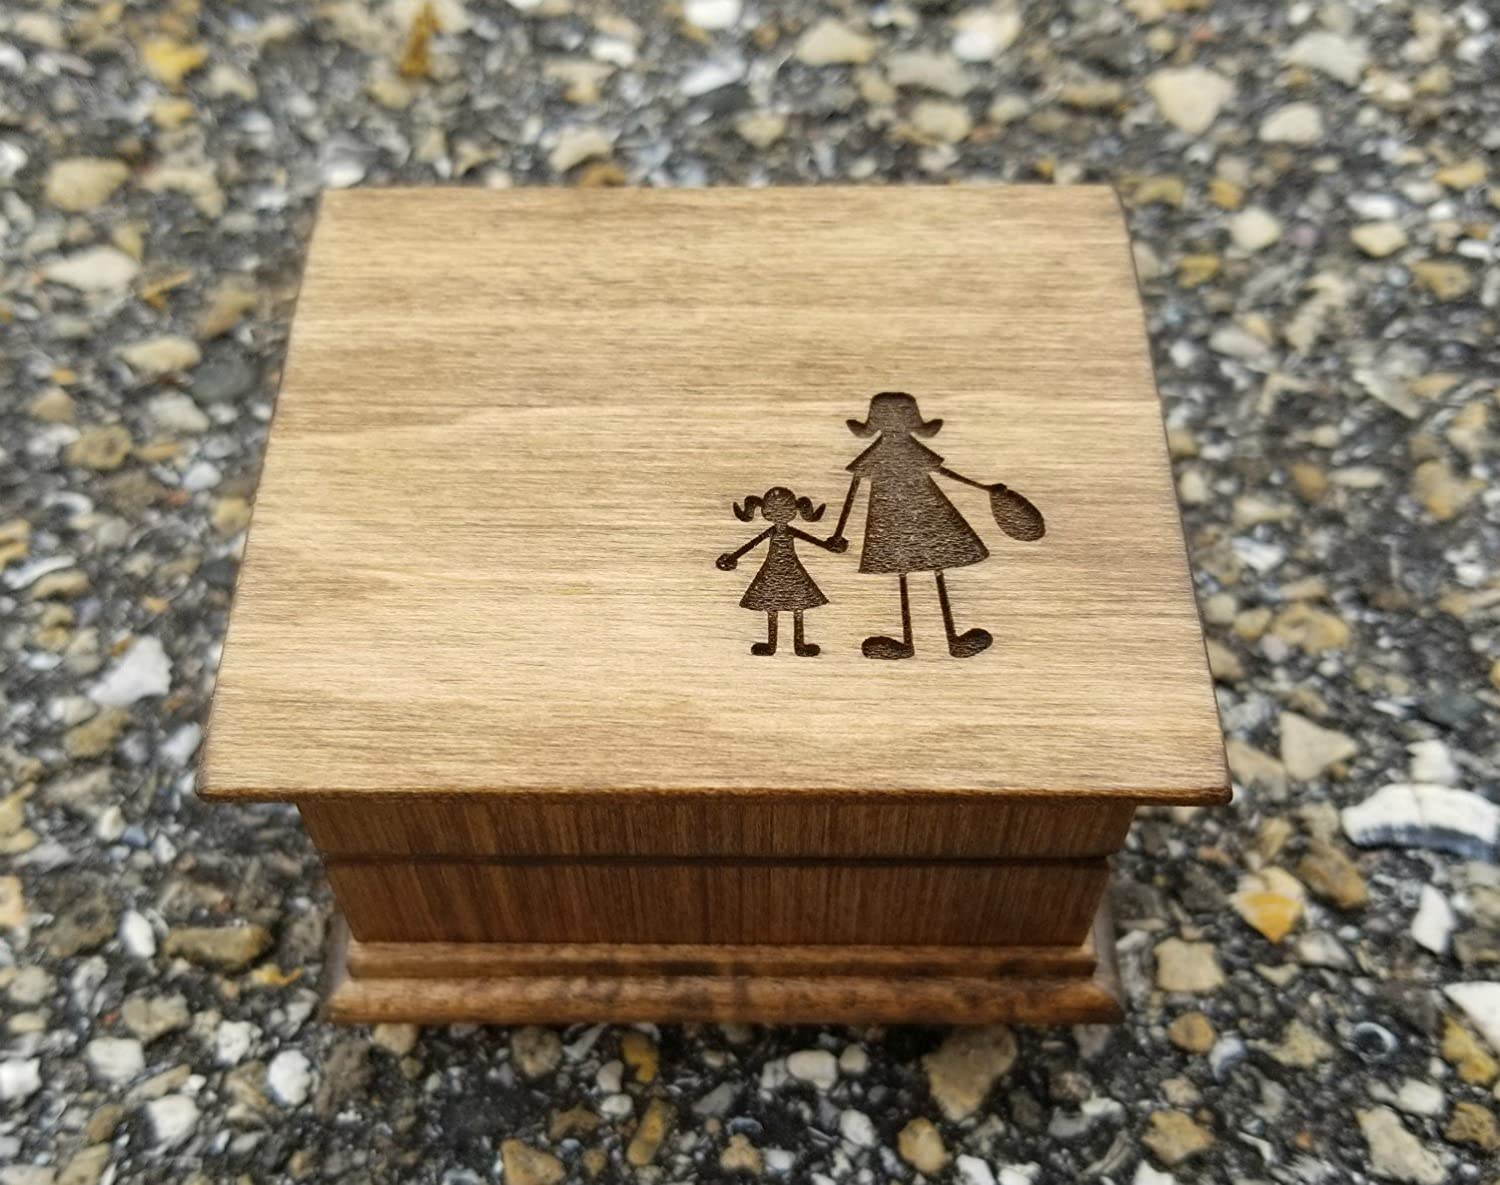 Custom made music box with Mom and heart image engraved on top with your choice of color and song Mom music box Mothers day gift